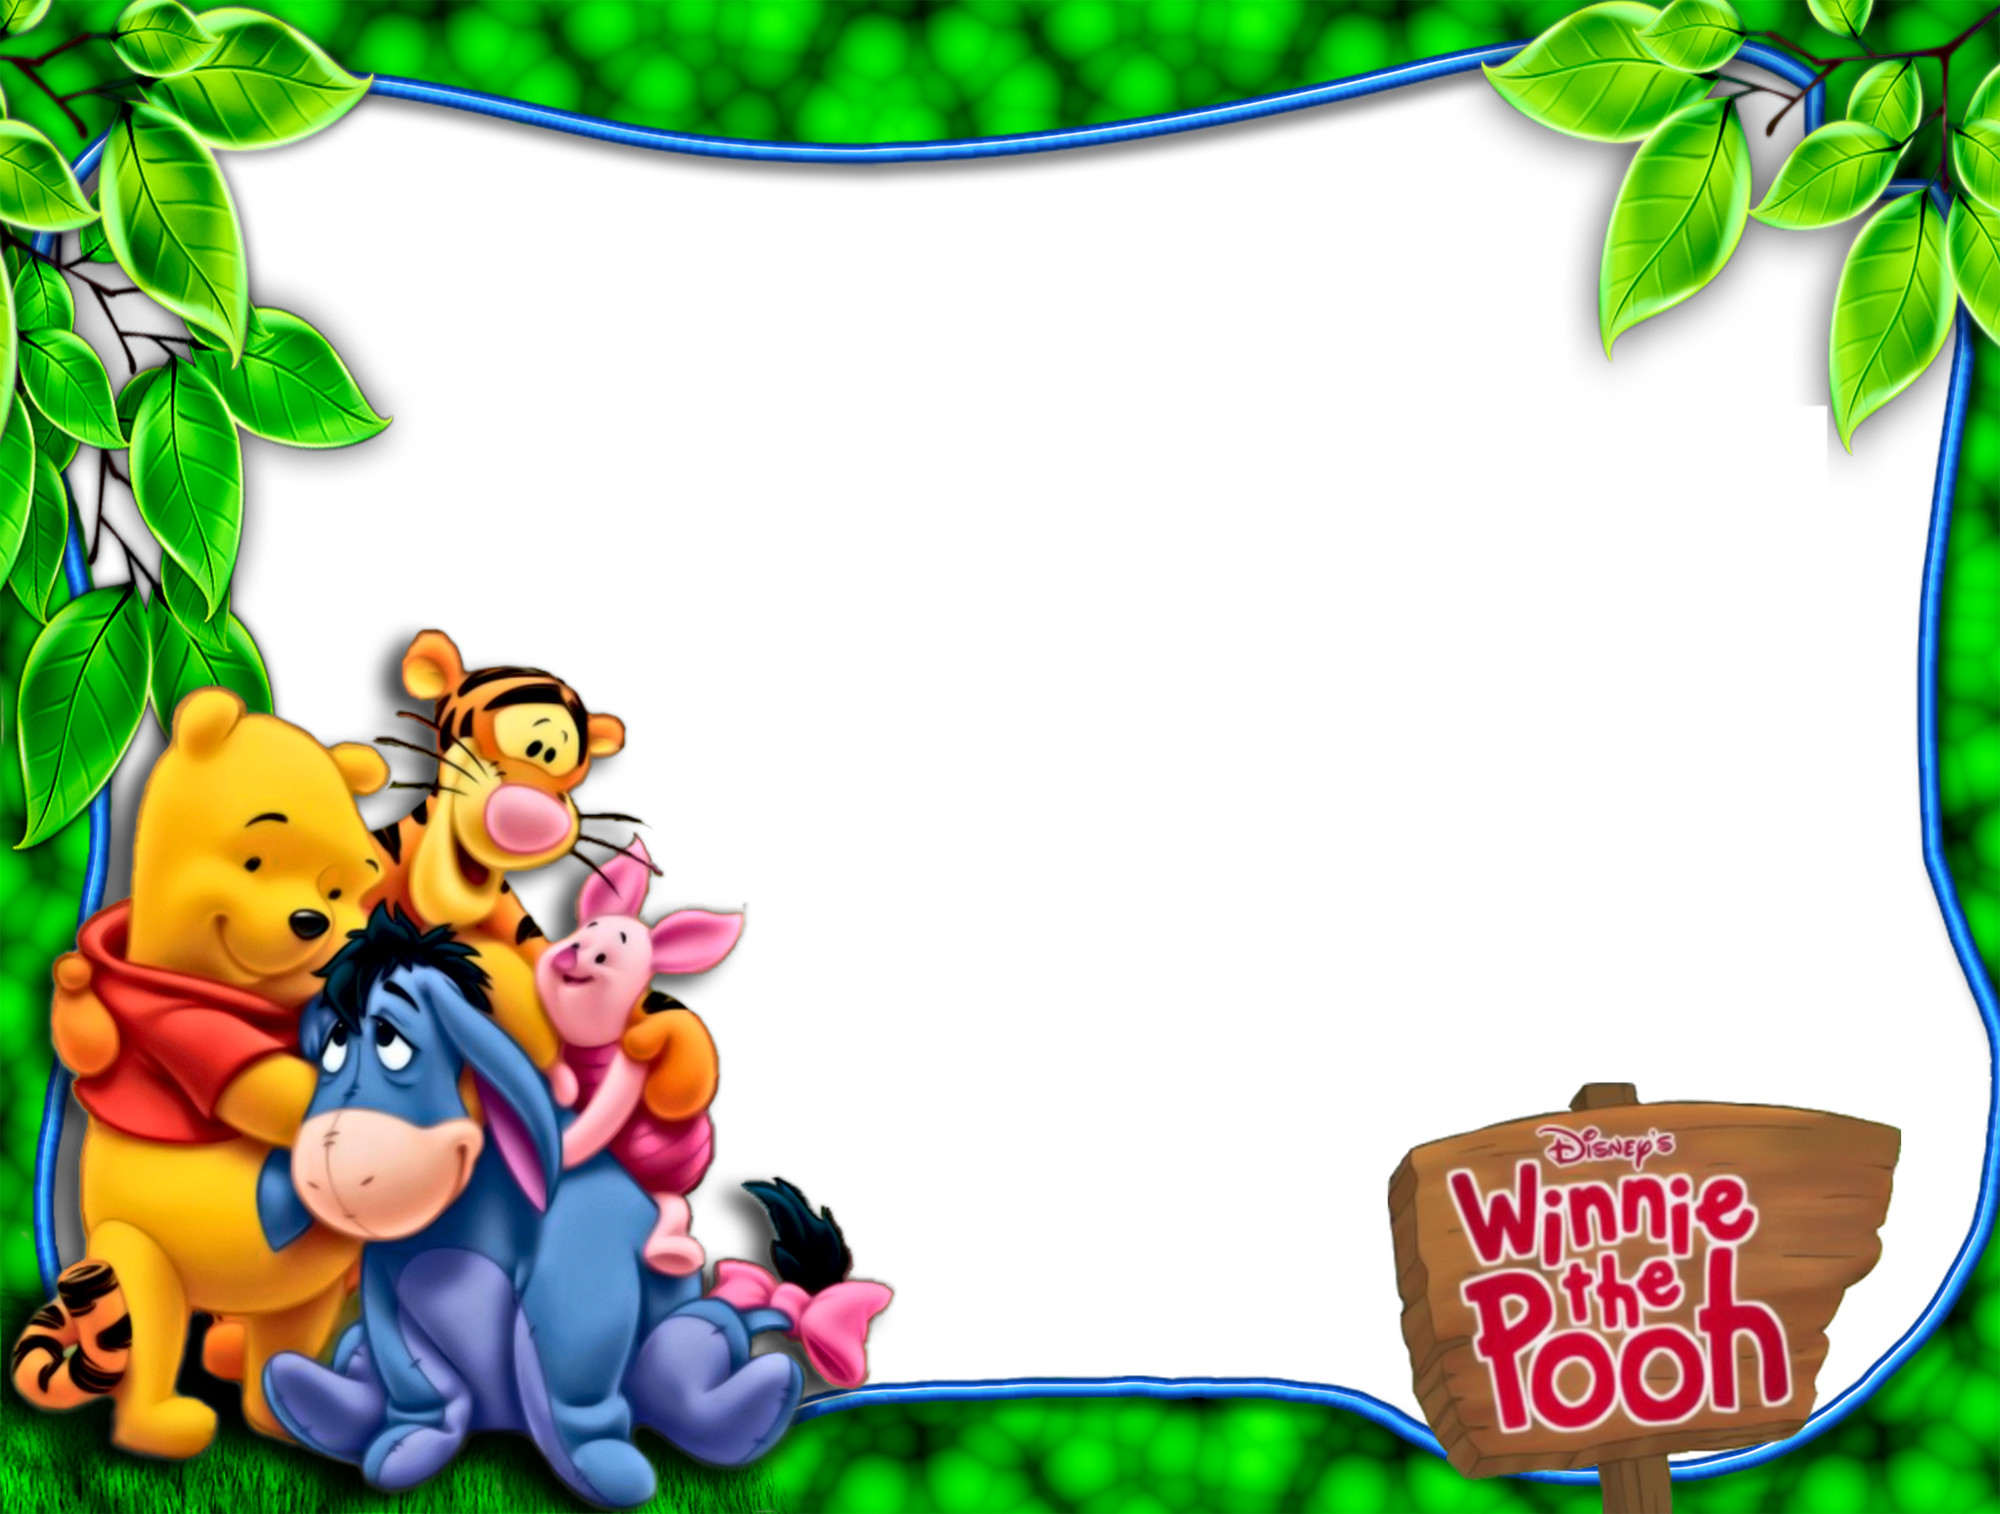 Winnie the pooh easter wallpaper 64 images 1920x1200 winnie the pooh wallpapers hd collage altavistaventures Gallery